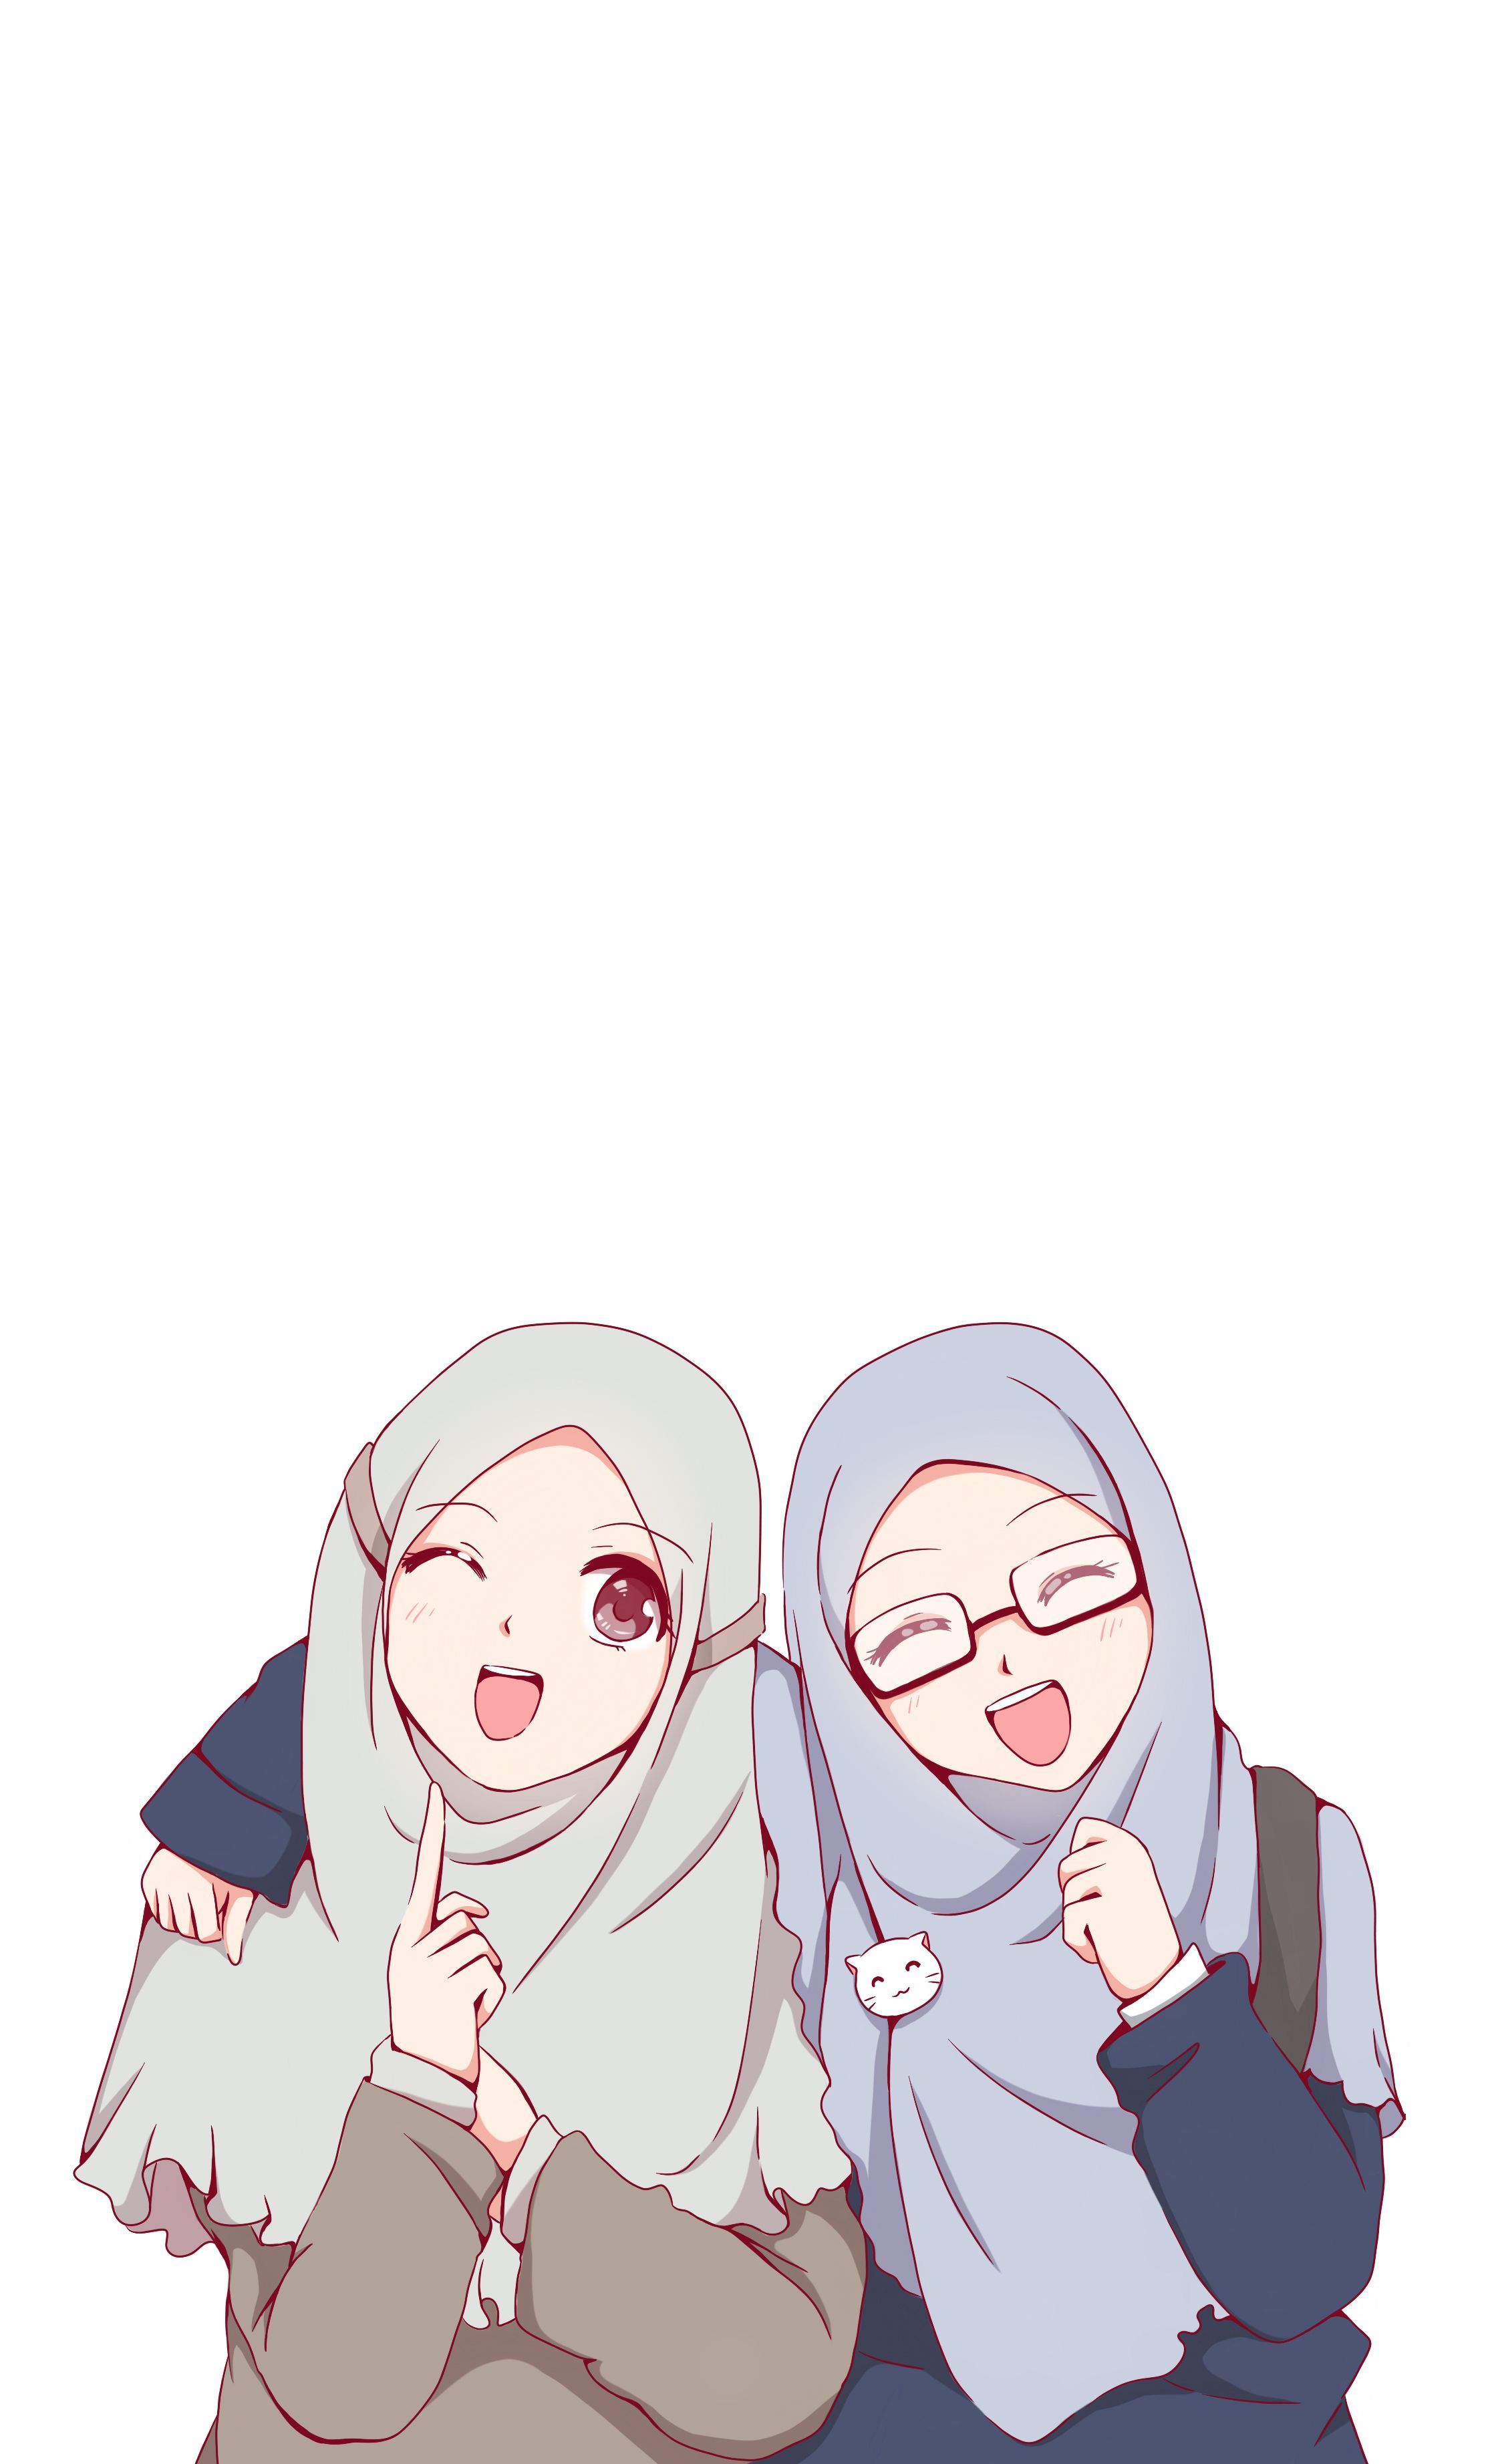 Islamic Girls Drawing Anime Wallpapers Wallpaper Cave